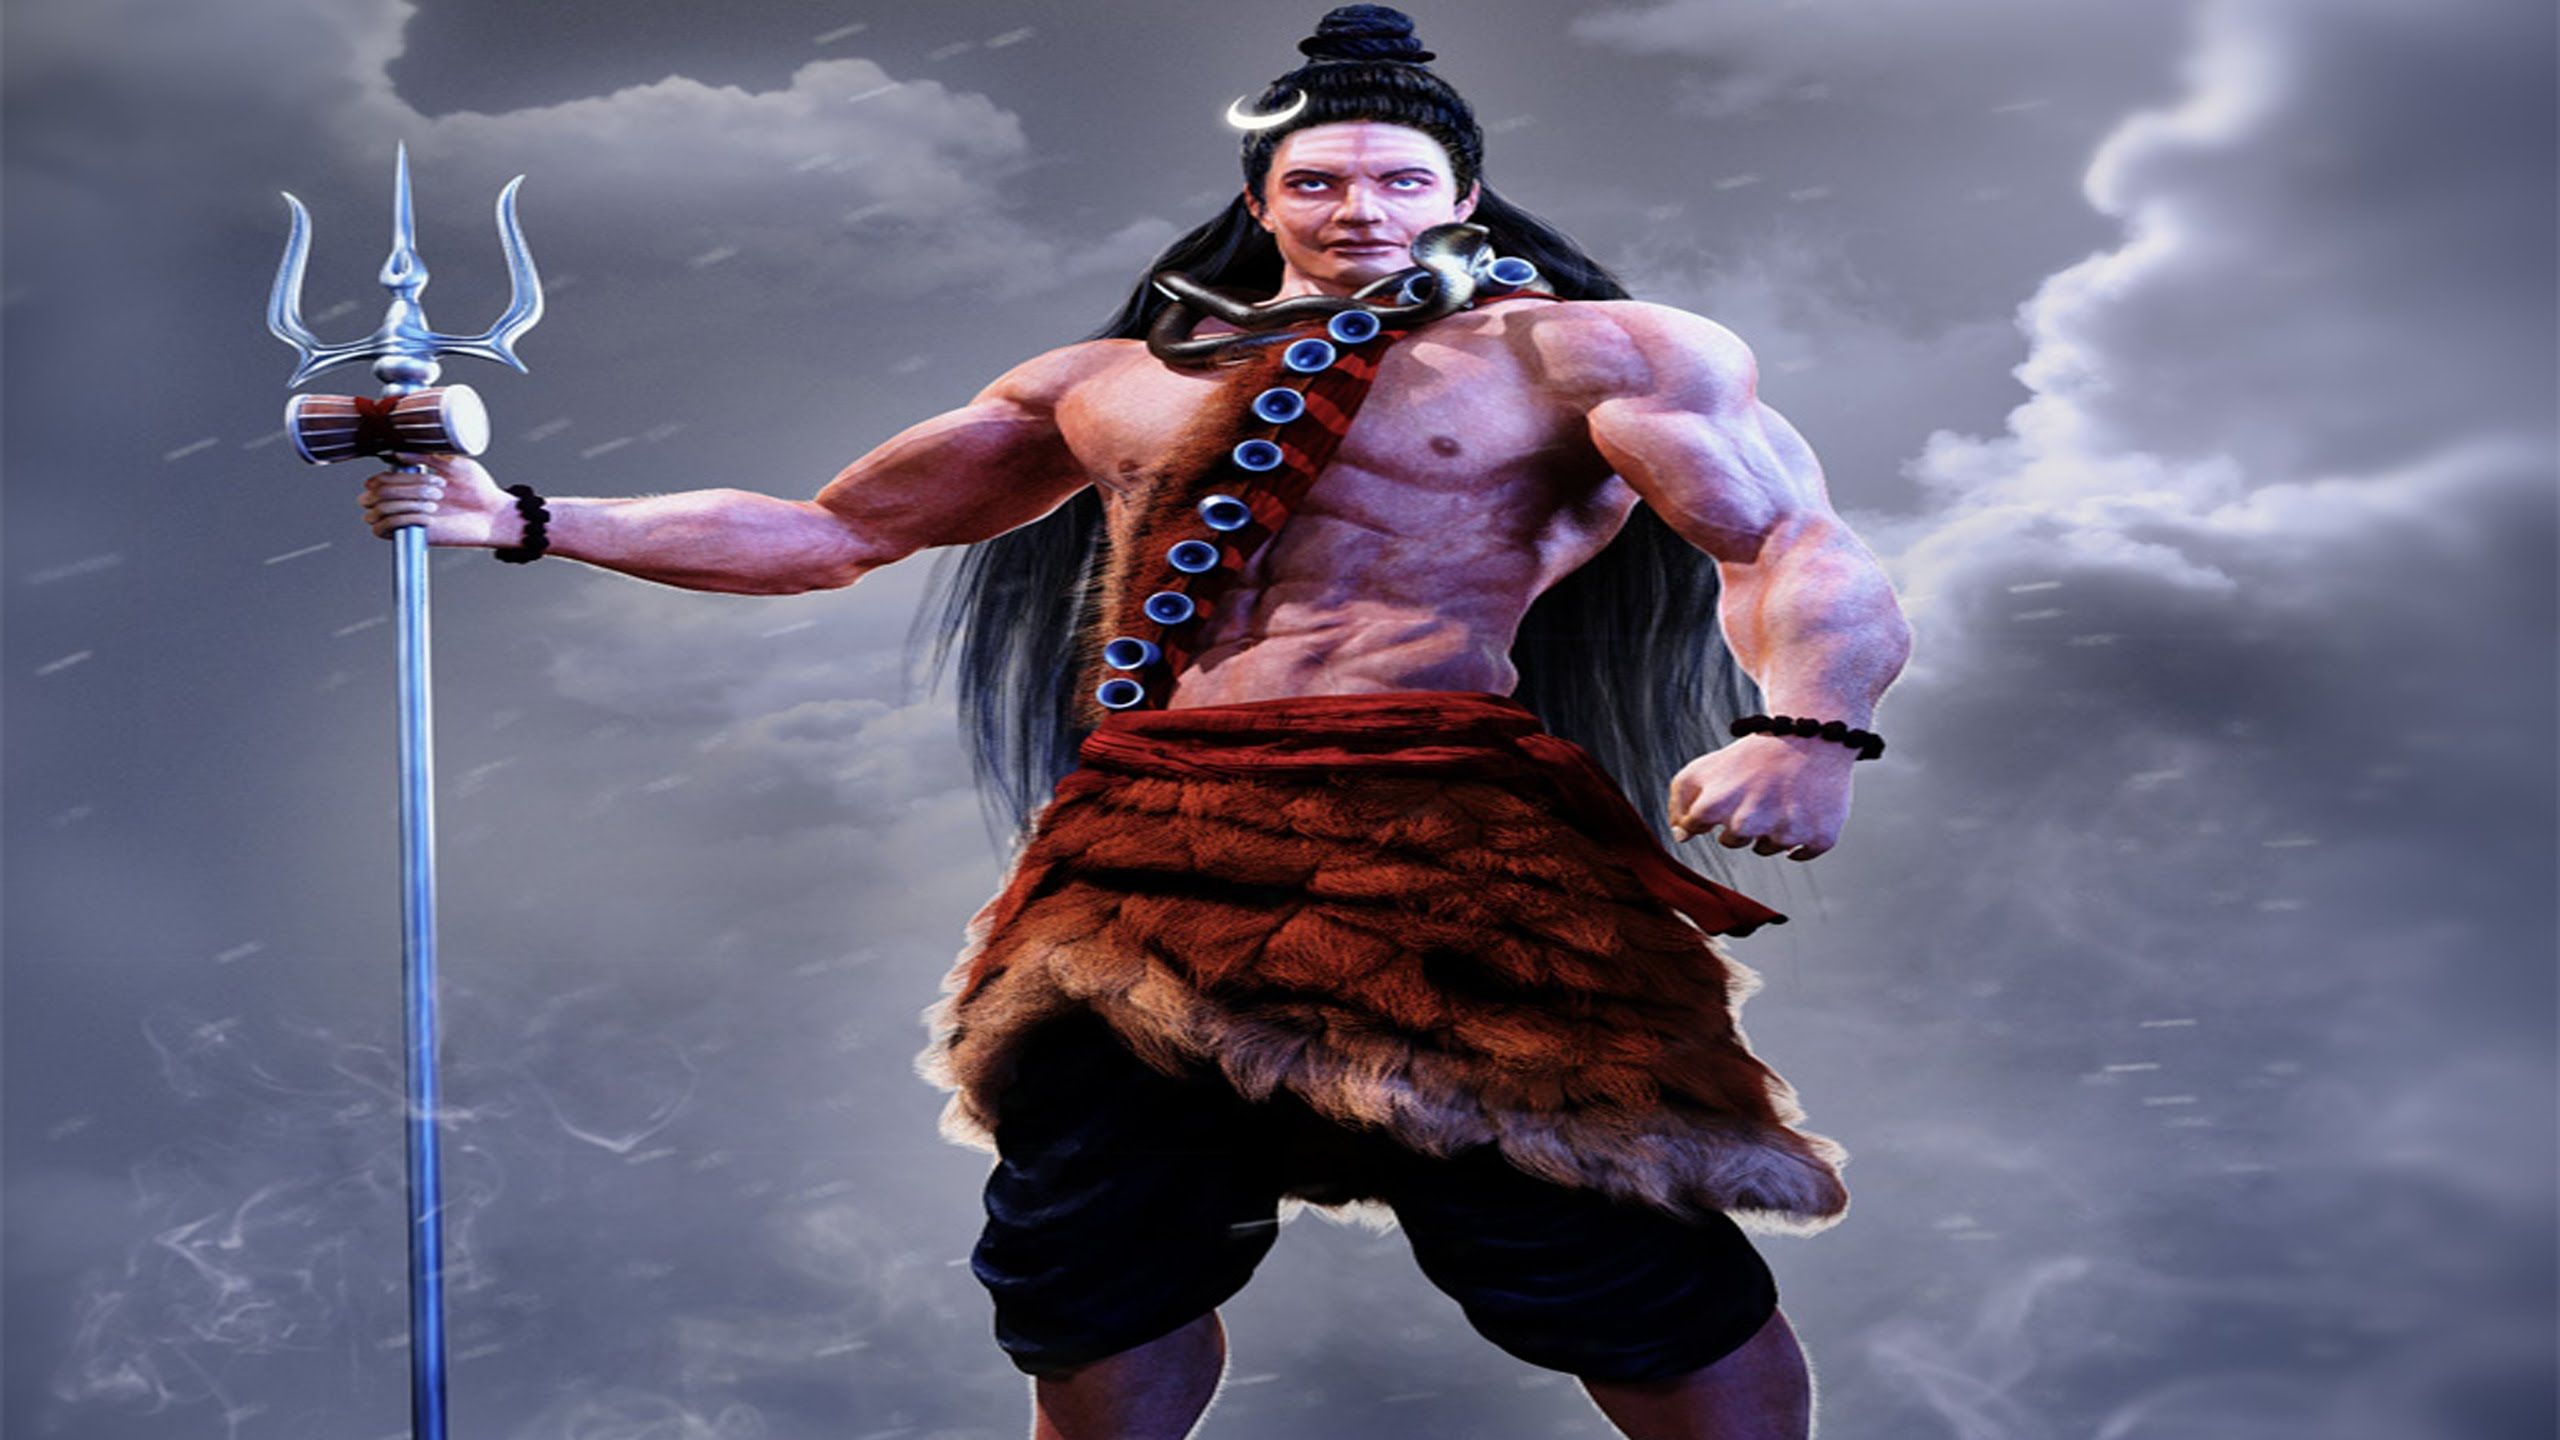 The Destroyer Shiva Hd Wallpaper For Free Download Desktop: Lord Shiva Angry Wallpapers High Resolution